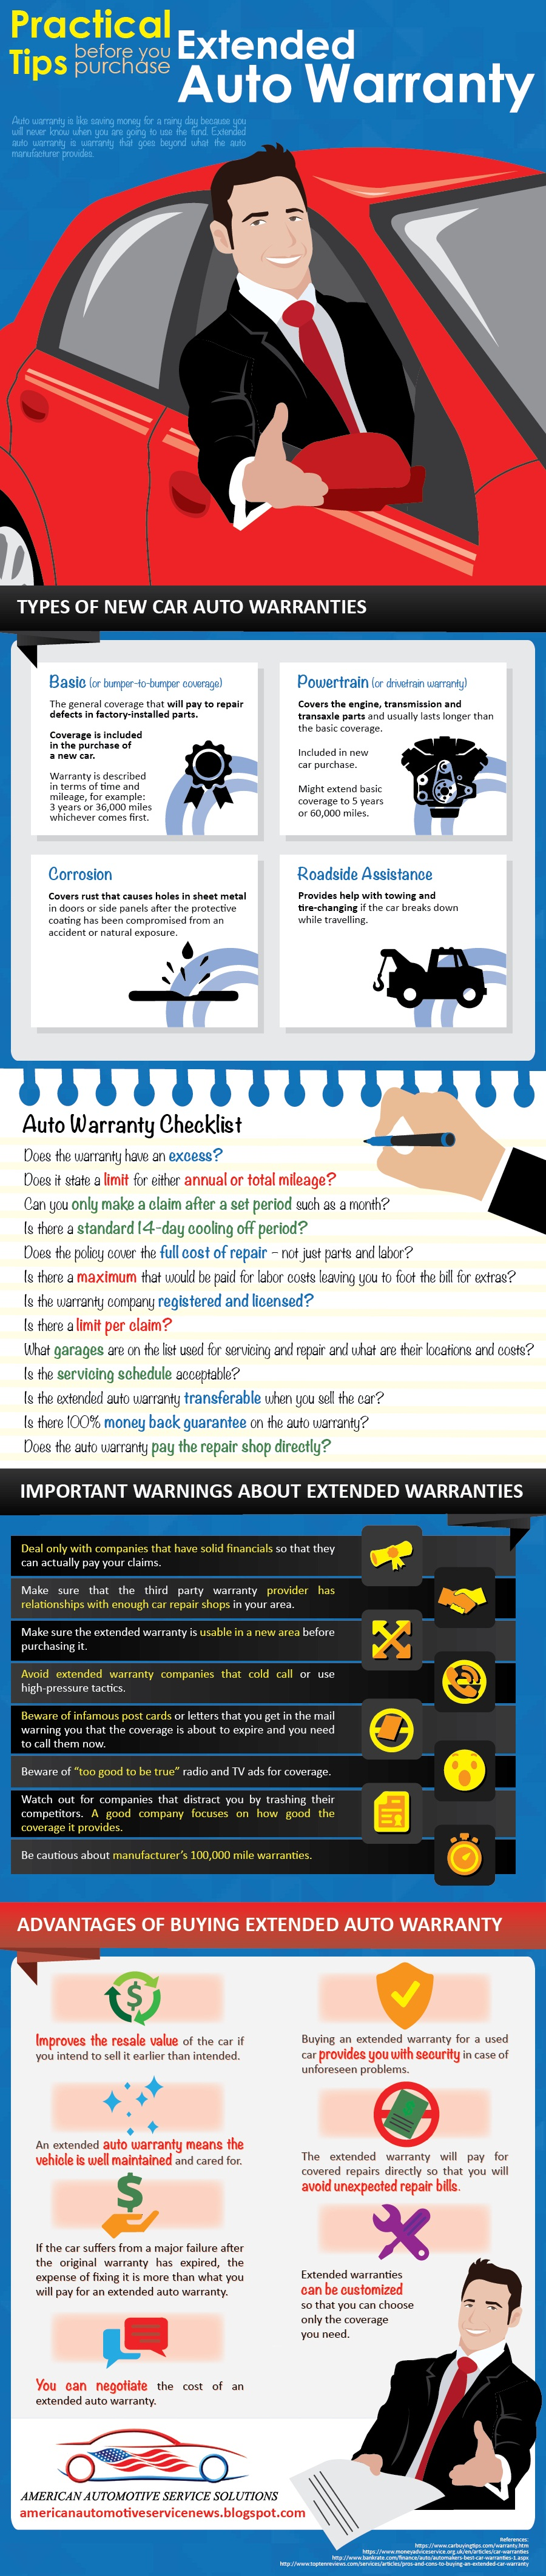 Practical Tips before you purchase Extended Auto Warranty